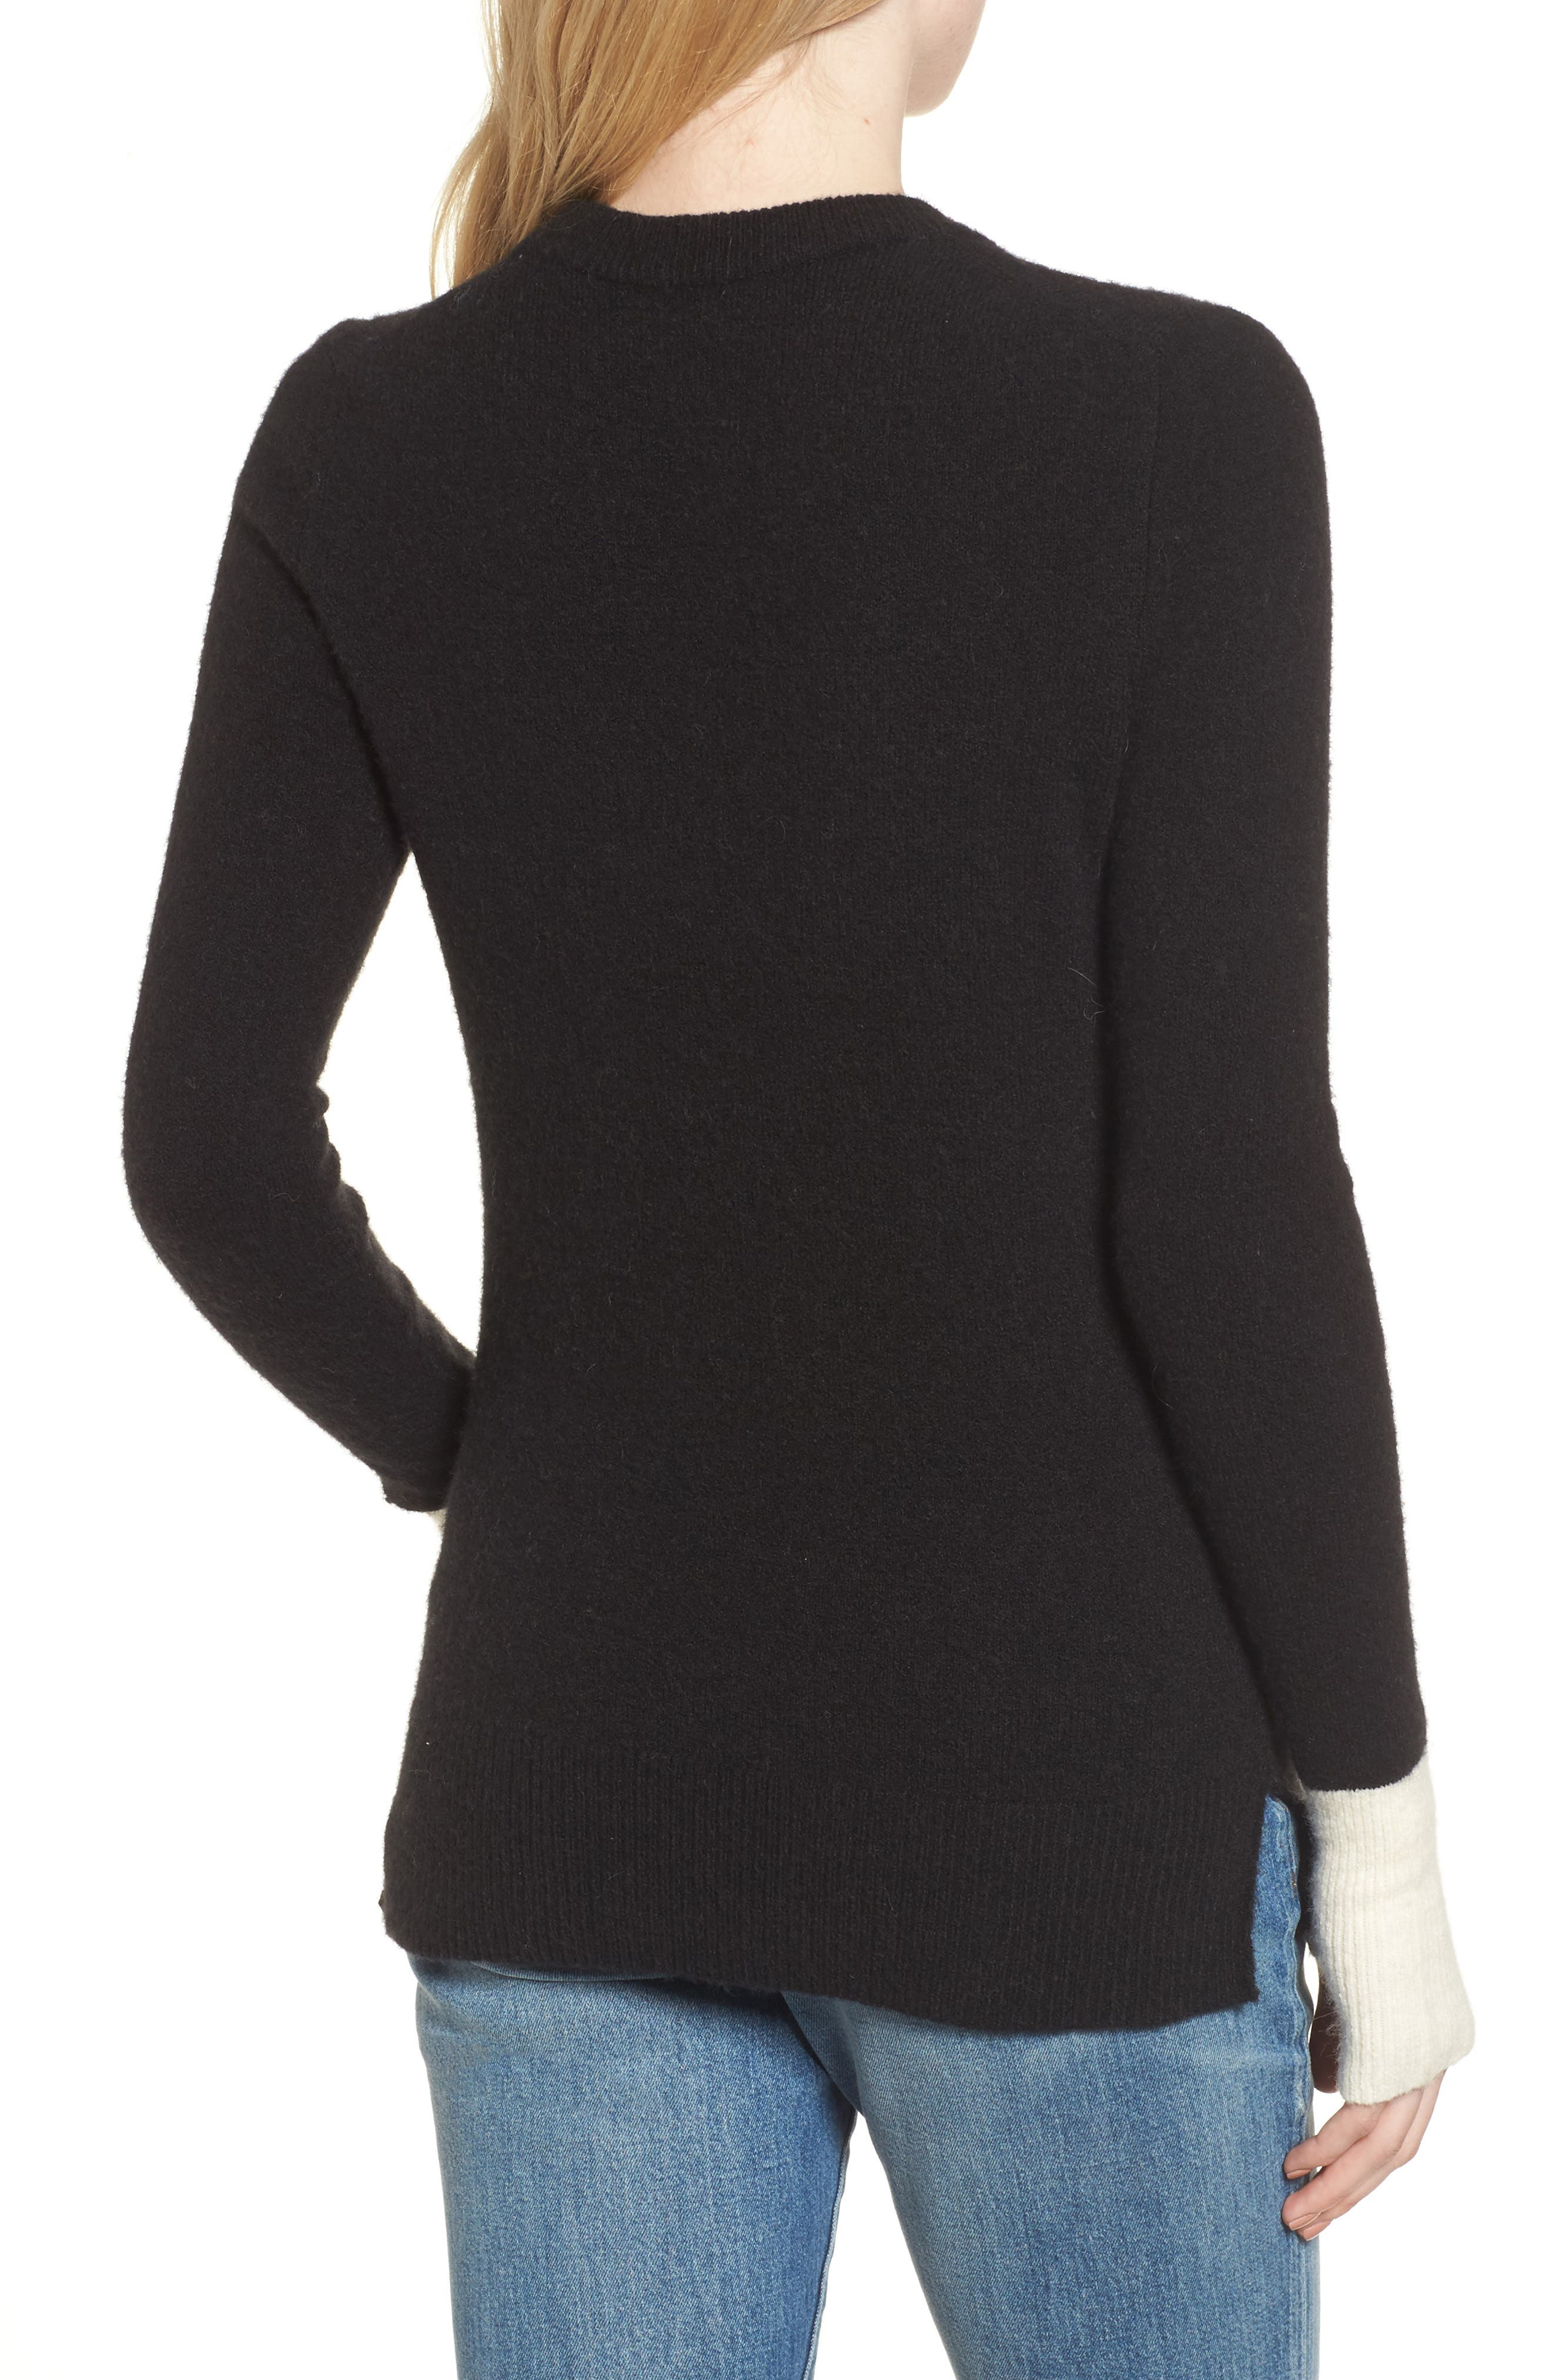 Fremont Colorblock Pullover Sweater,                             Alternate thumbnail 2, color,                             010